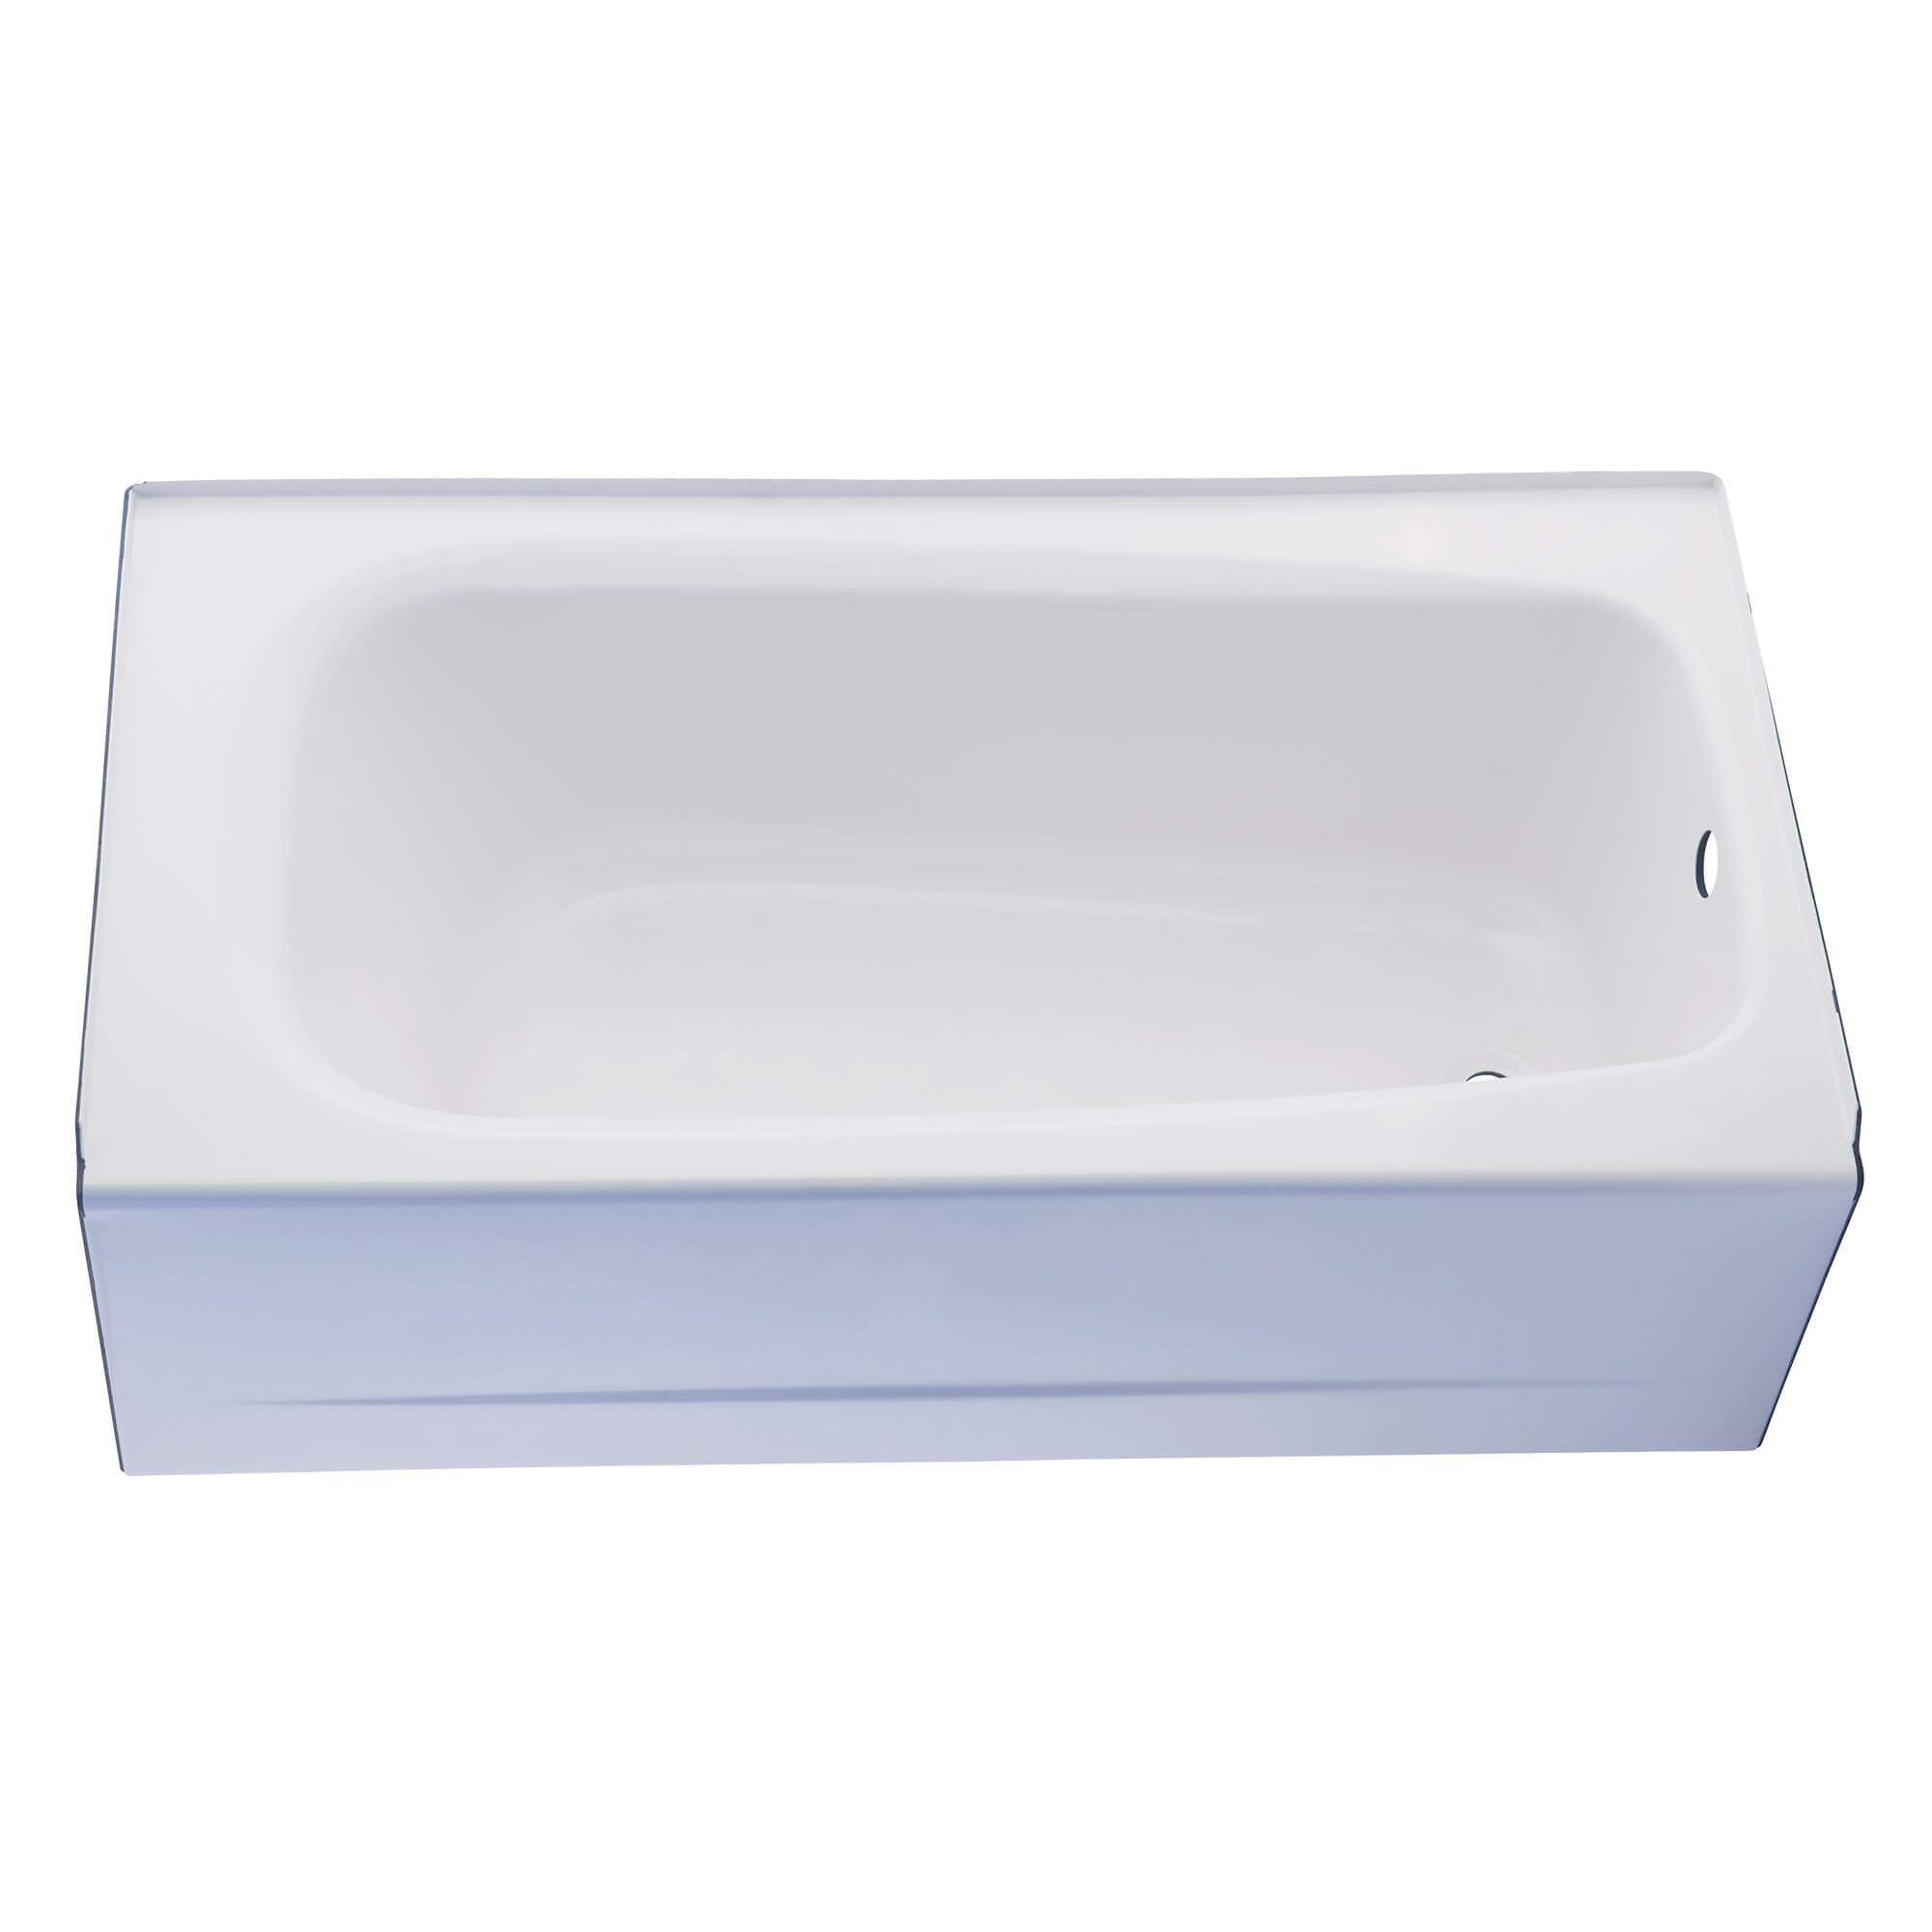 DXV Hawkins Bathtub – Right Drain – Projects Model